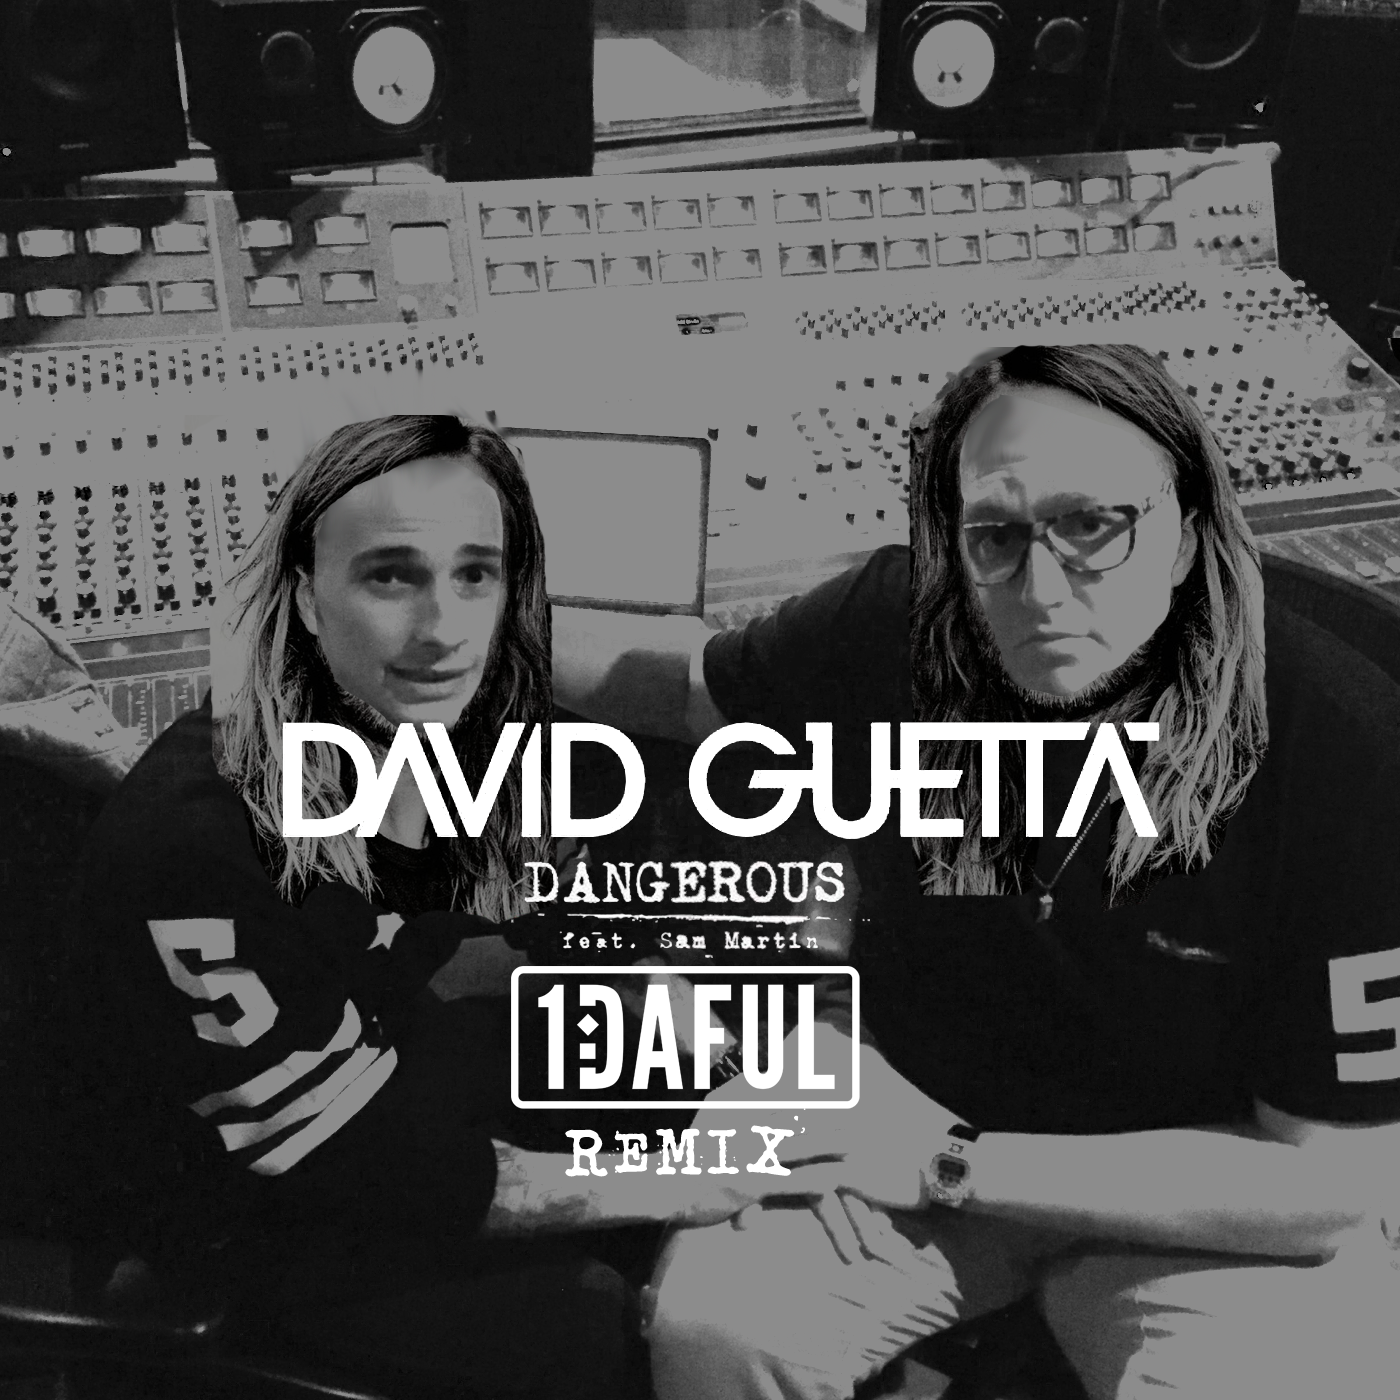 Dangerous 1DAFUL Remix - David Guetta ft. Sam Martin - Artwork